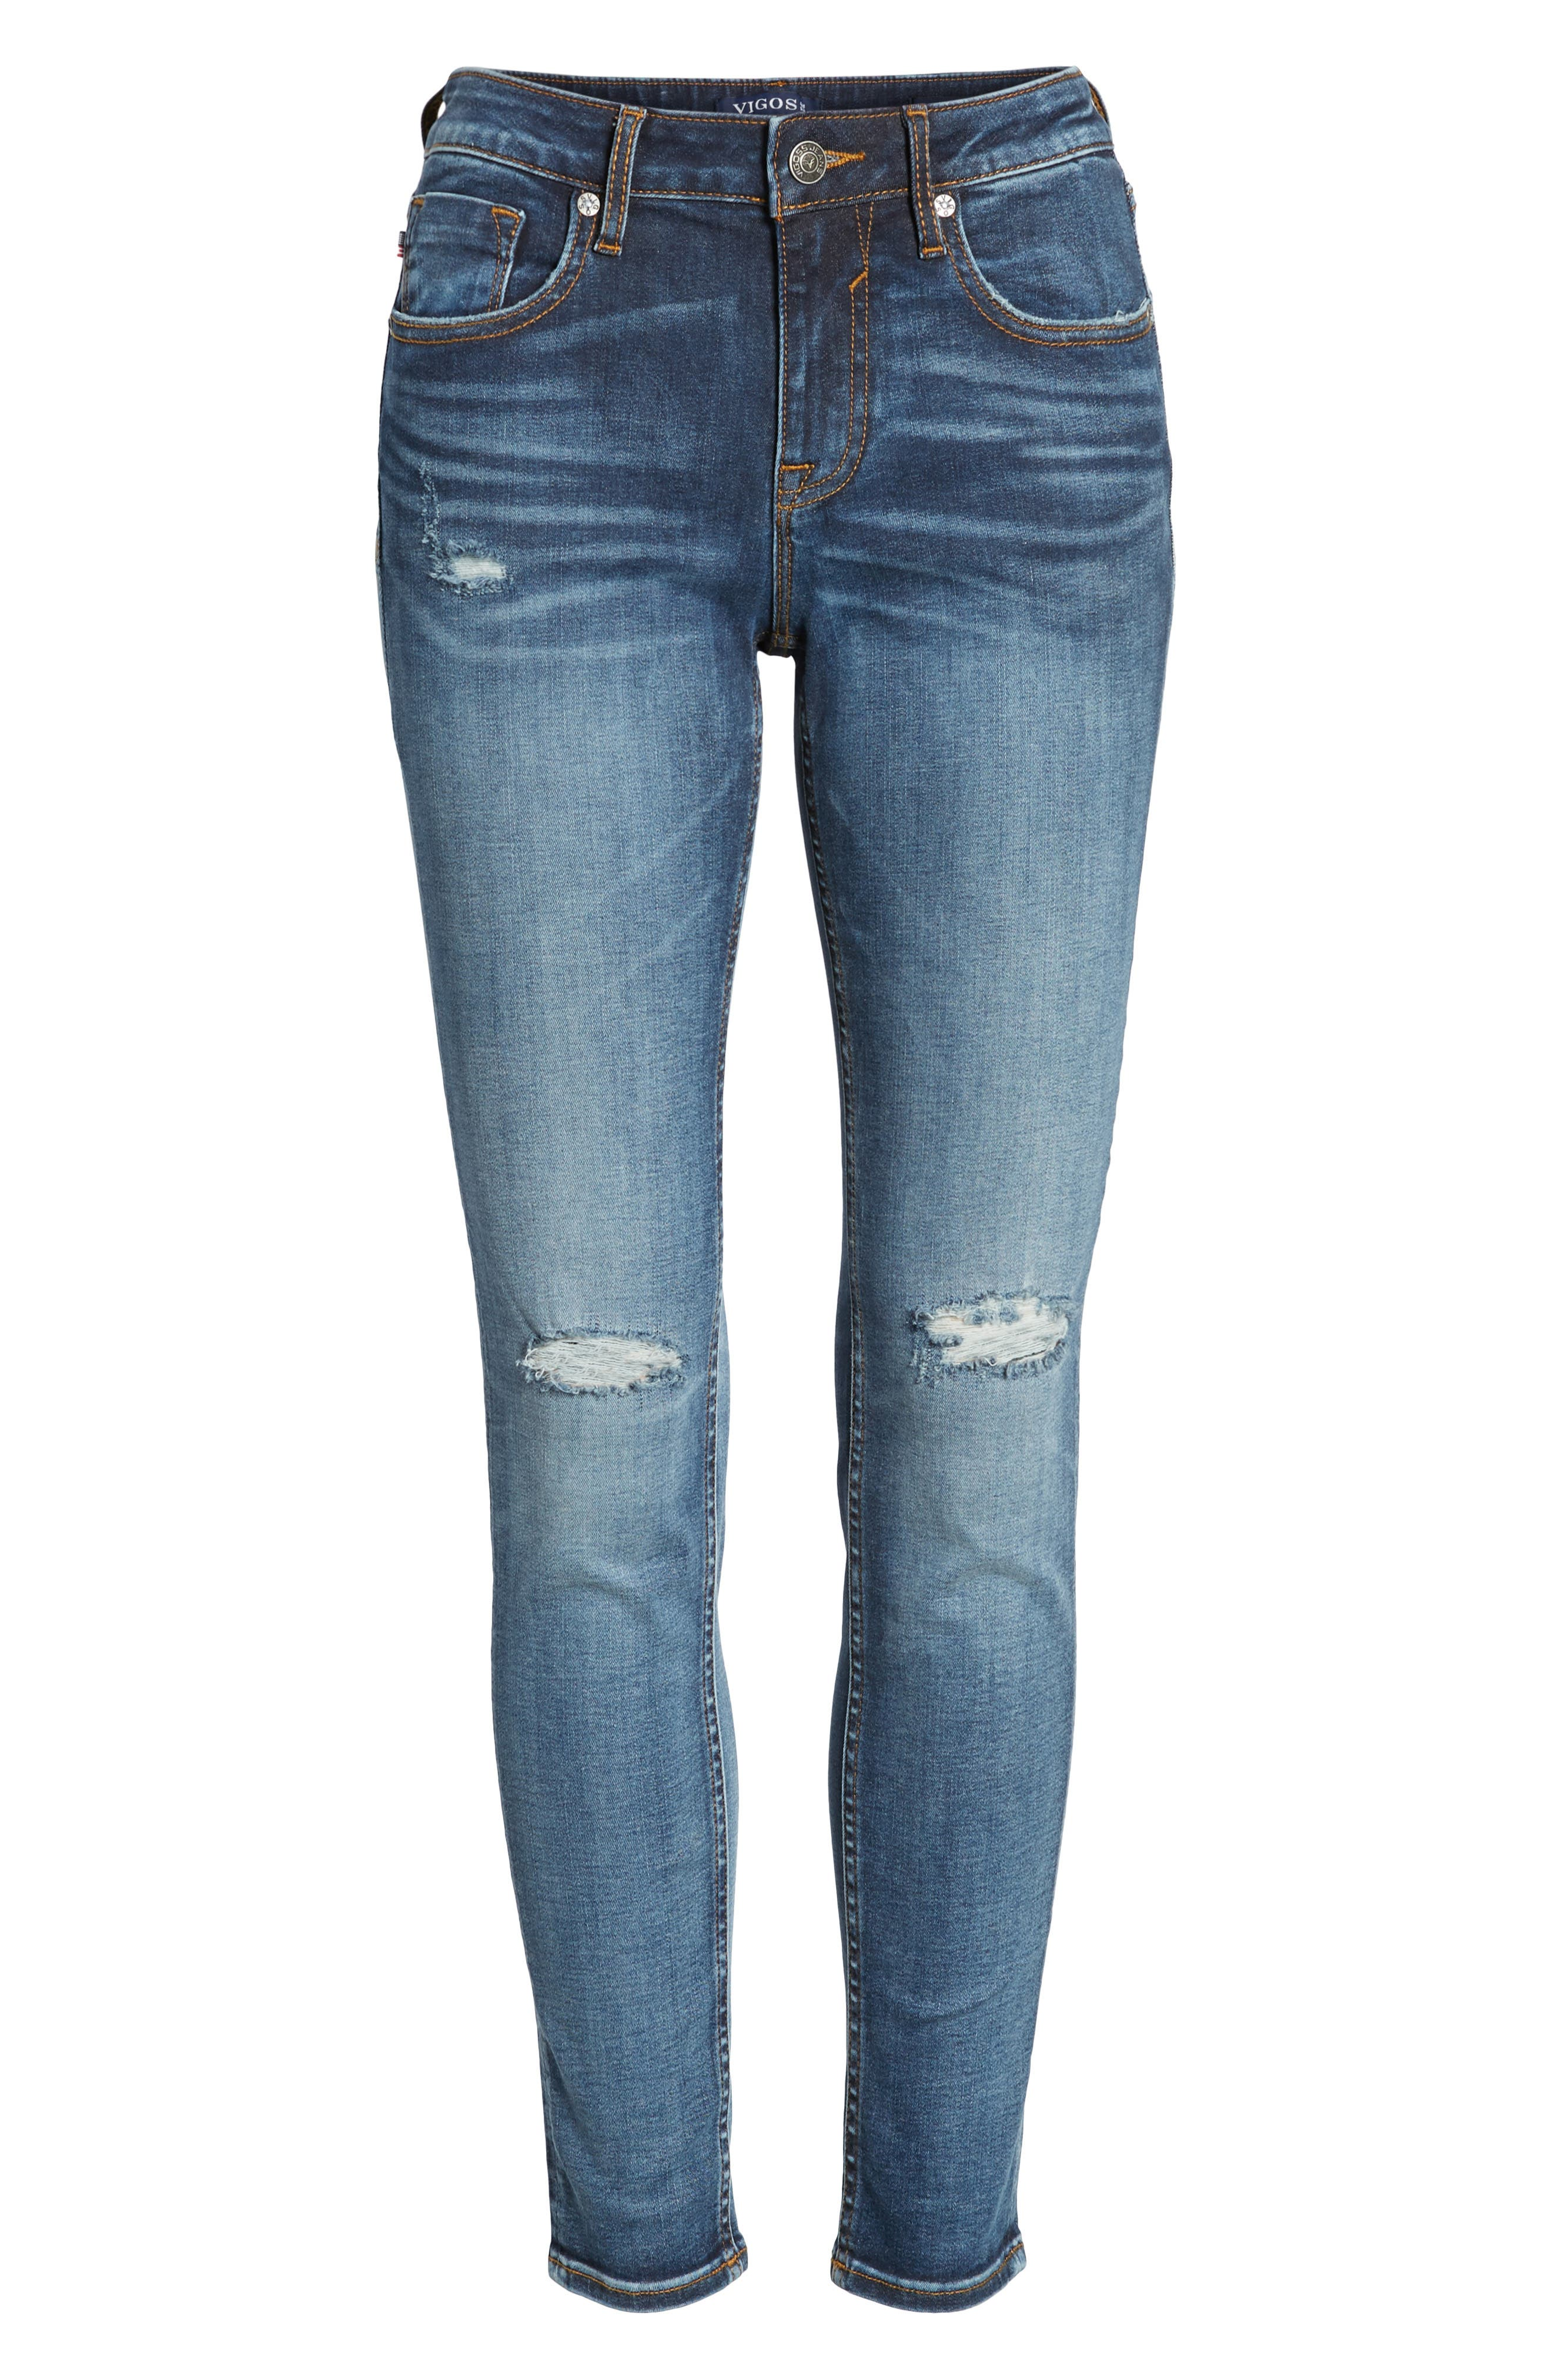 Jagger Ripped Skinny Jeans,                             Alternate thumbnail 7, color,